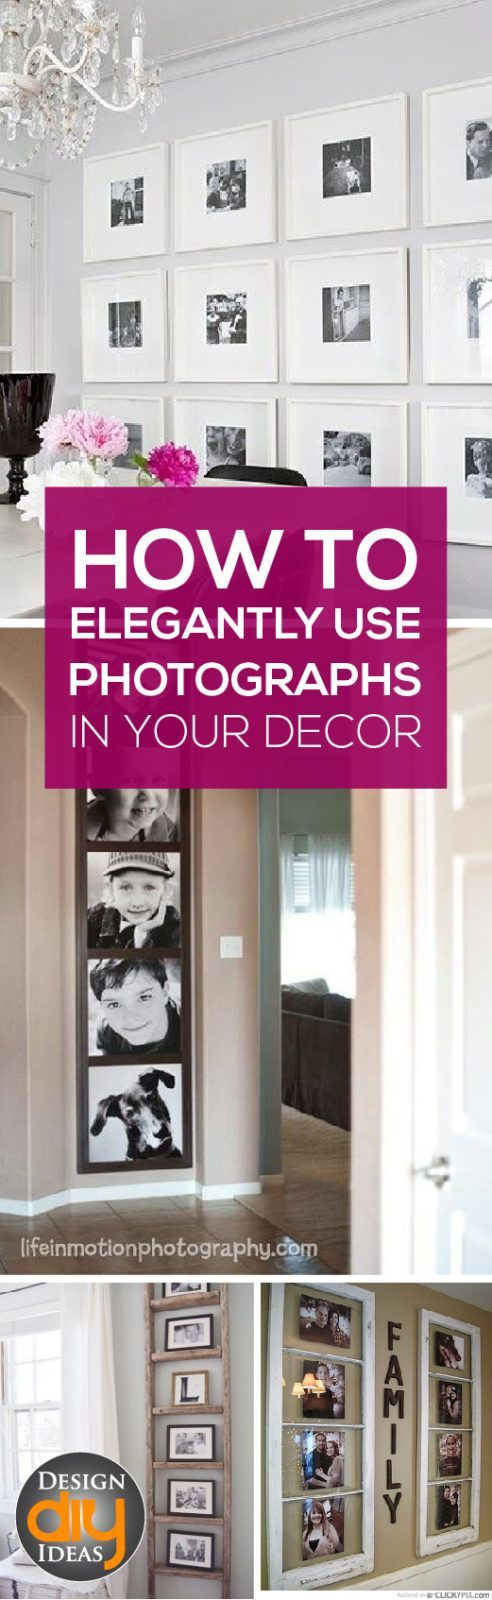 How to Elegantly Use Photographs in Your Decor - Design DIY Ideas-The key with decorating with photographs is to be intentional. Here's a few tips and tricks to make your family photos a work of art.